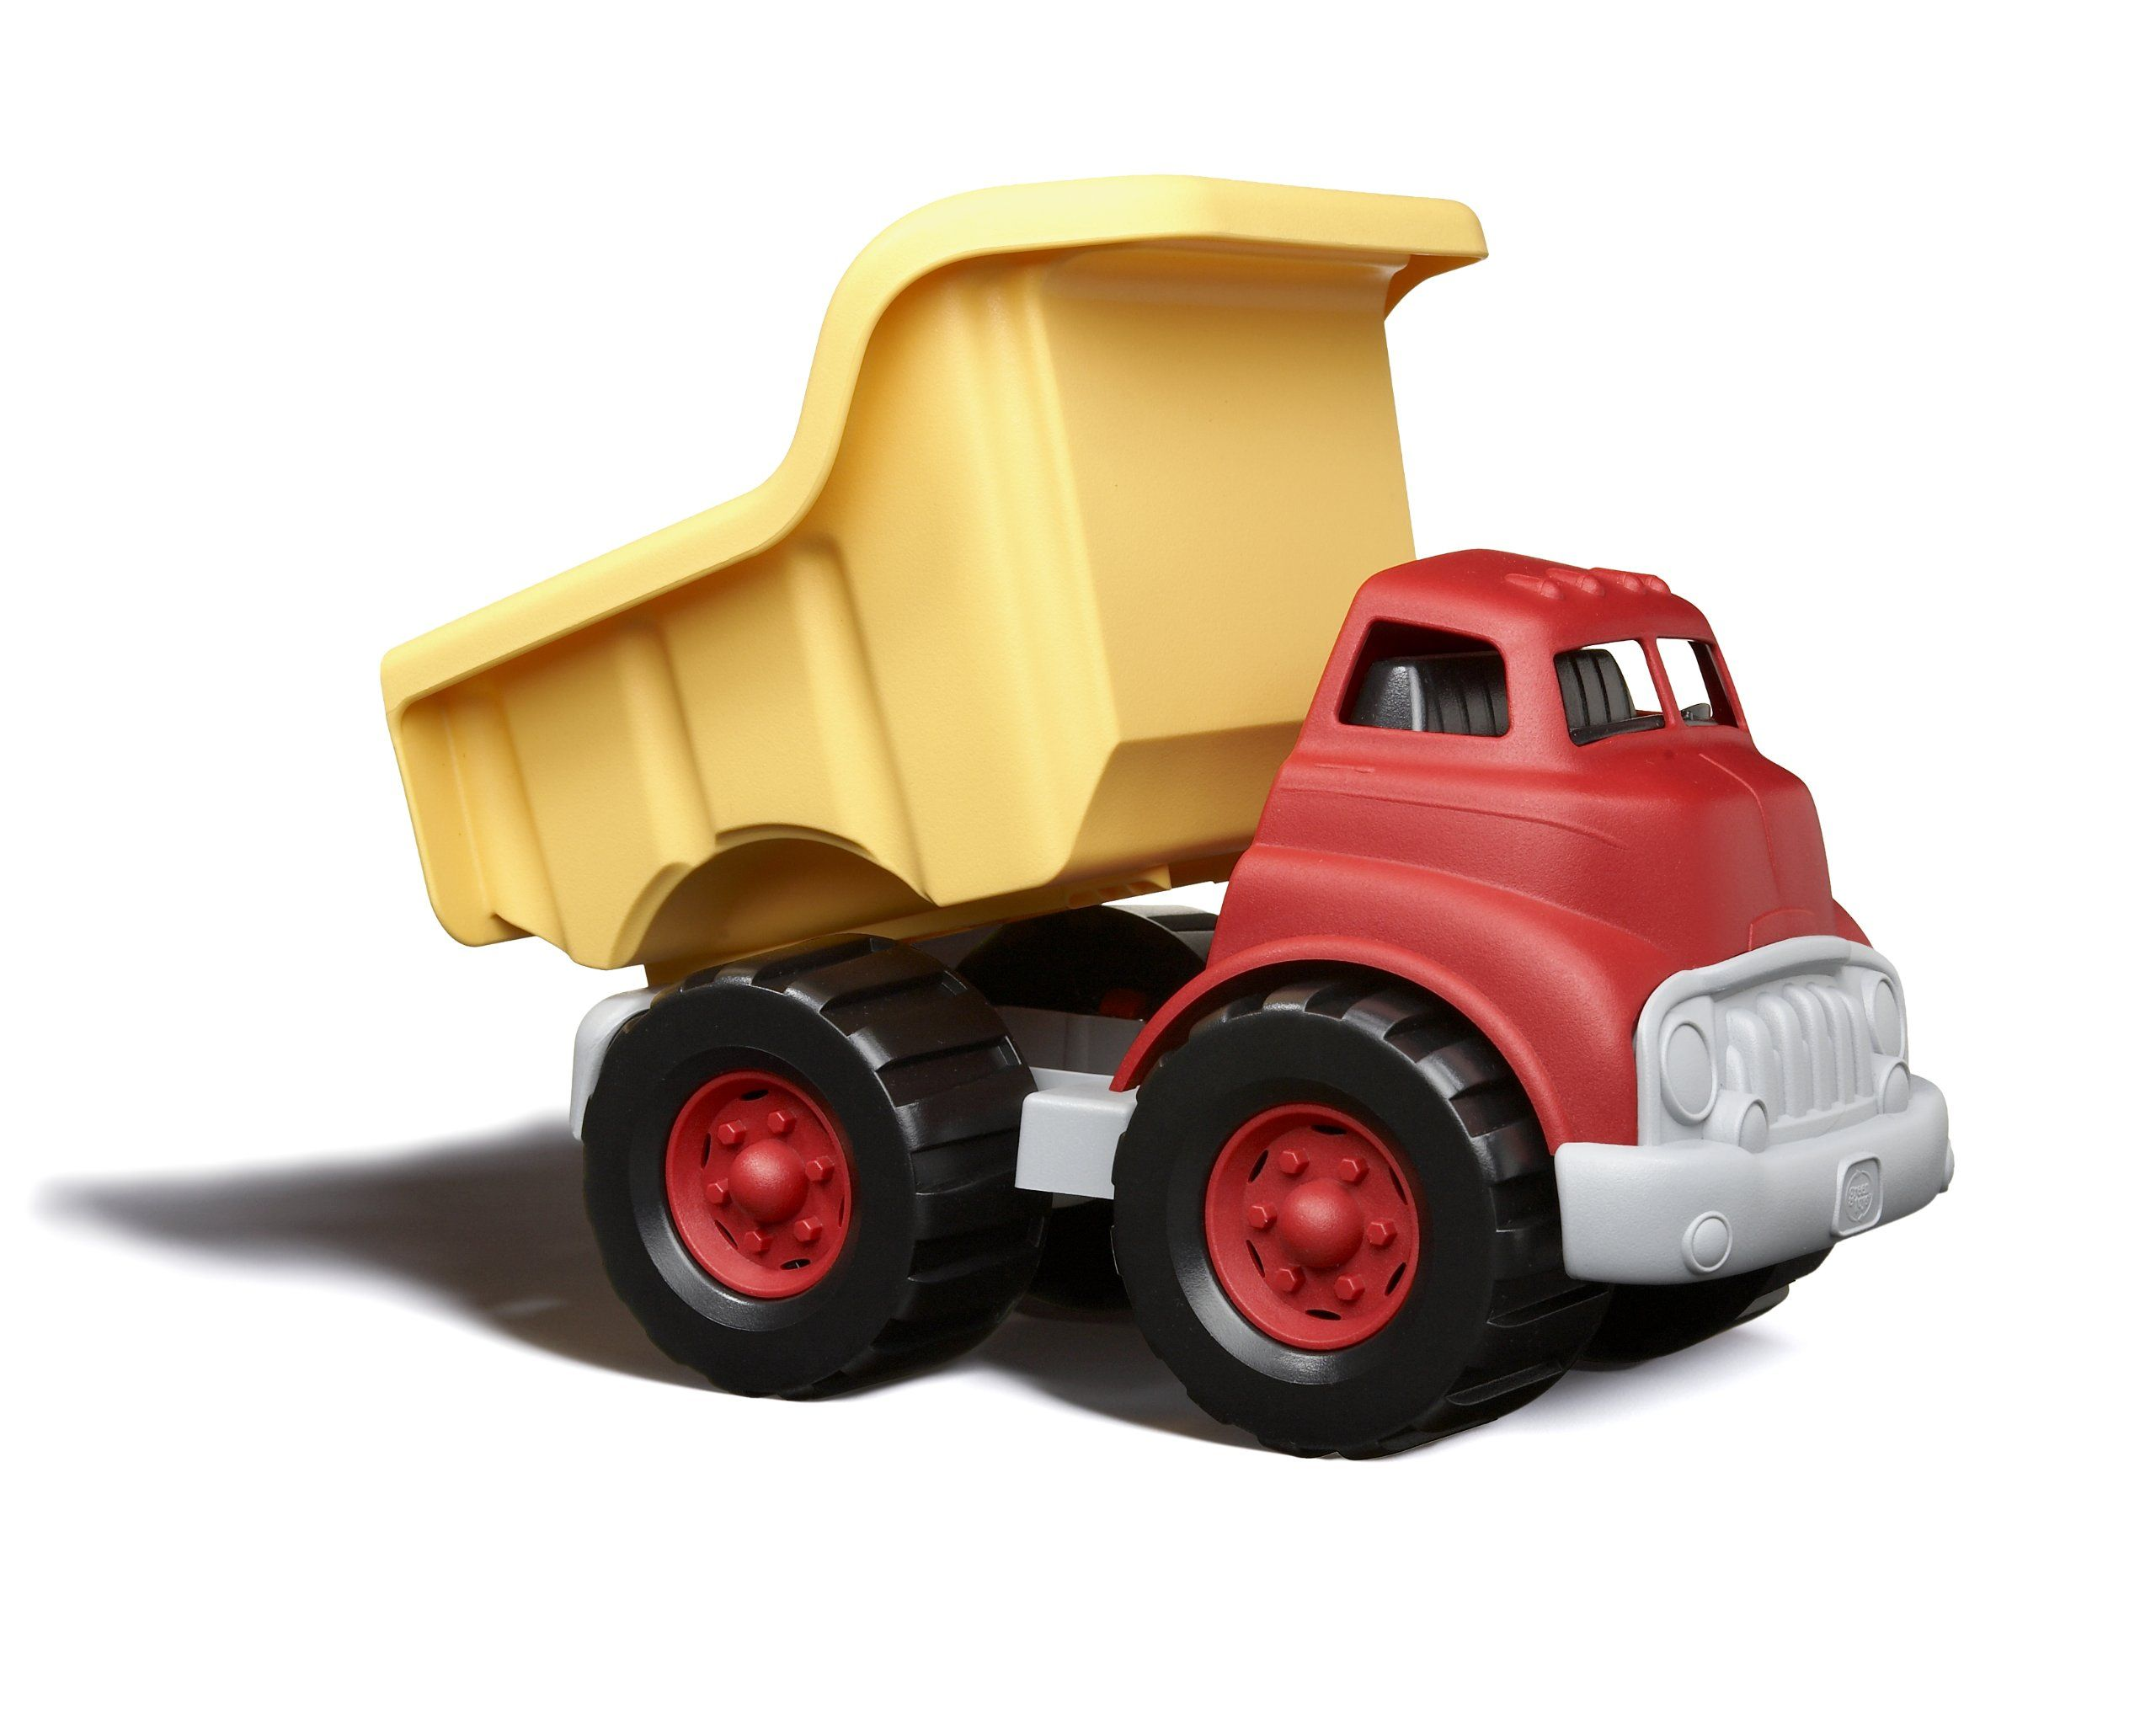 Fine Motor Skill Development Phthalates Free Play Toys for Gross Motor Green Toys Dump Truck in Yellow and Red Pretend Play BPA Free